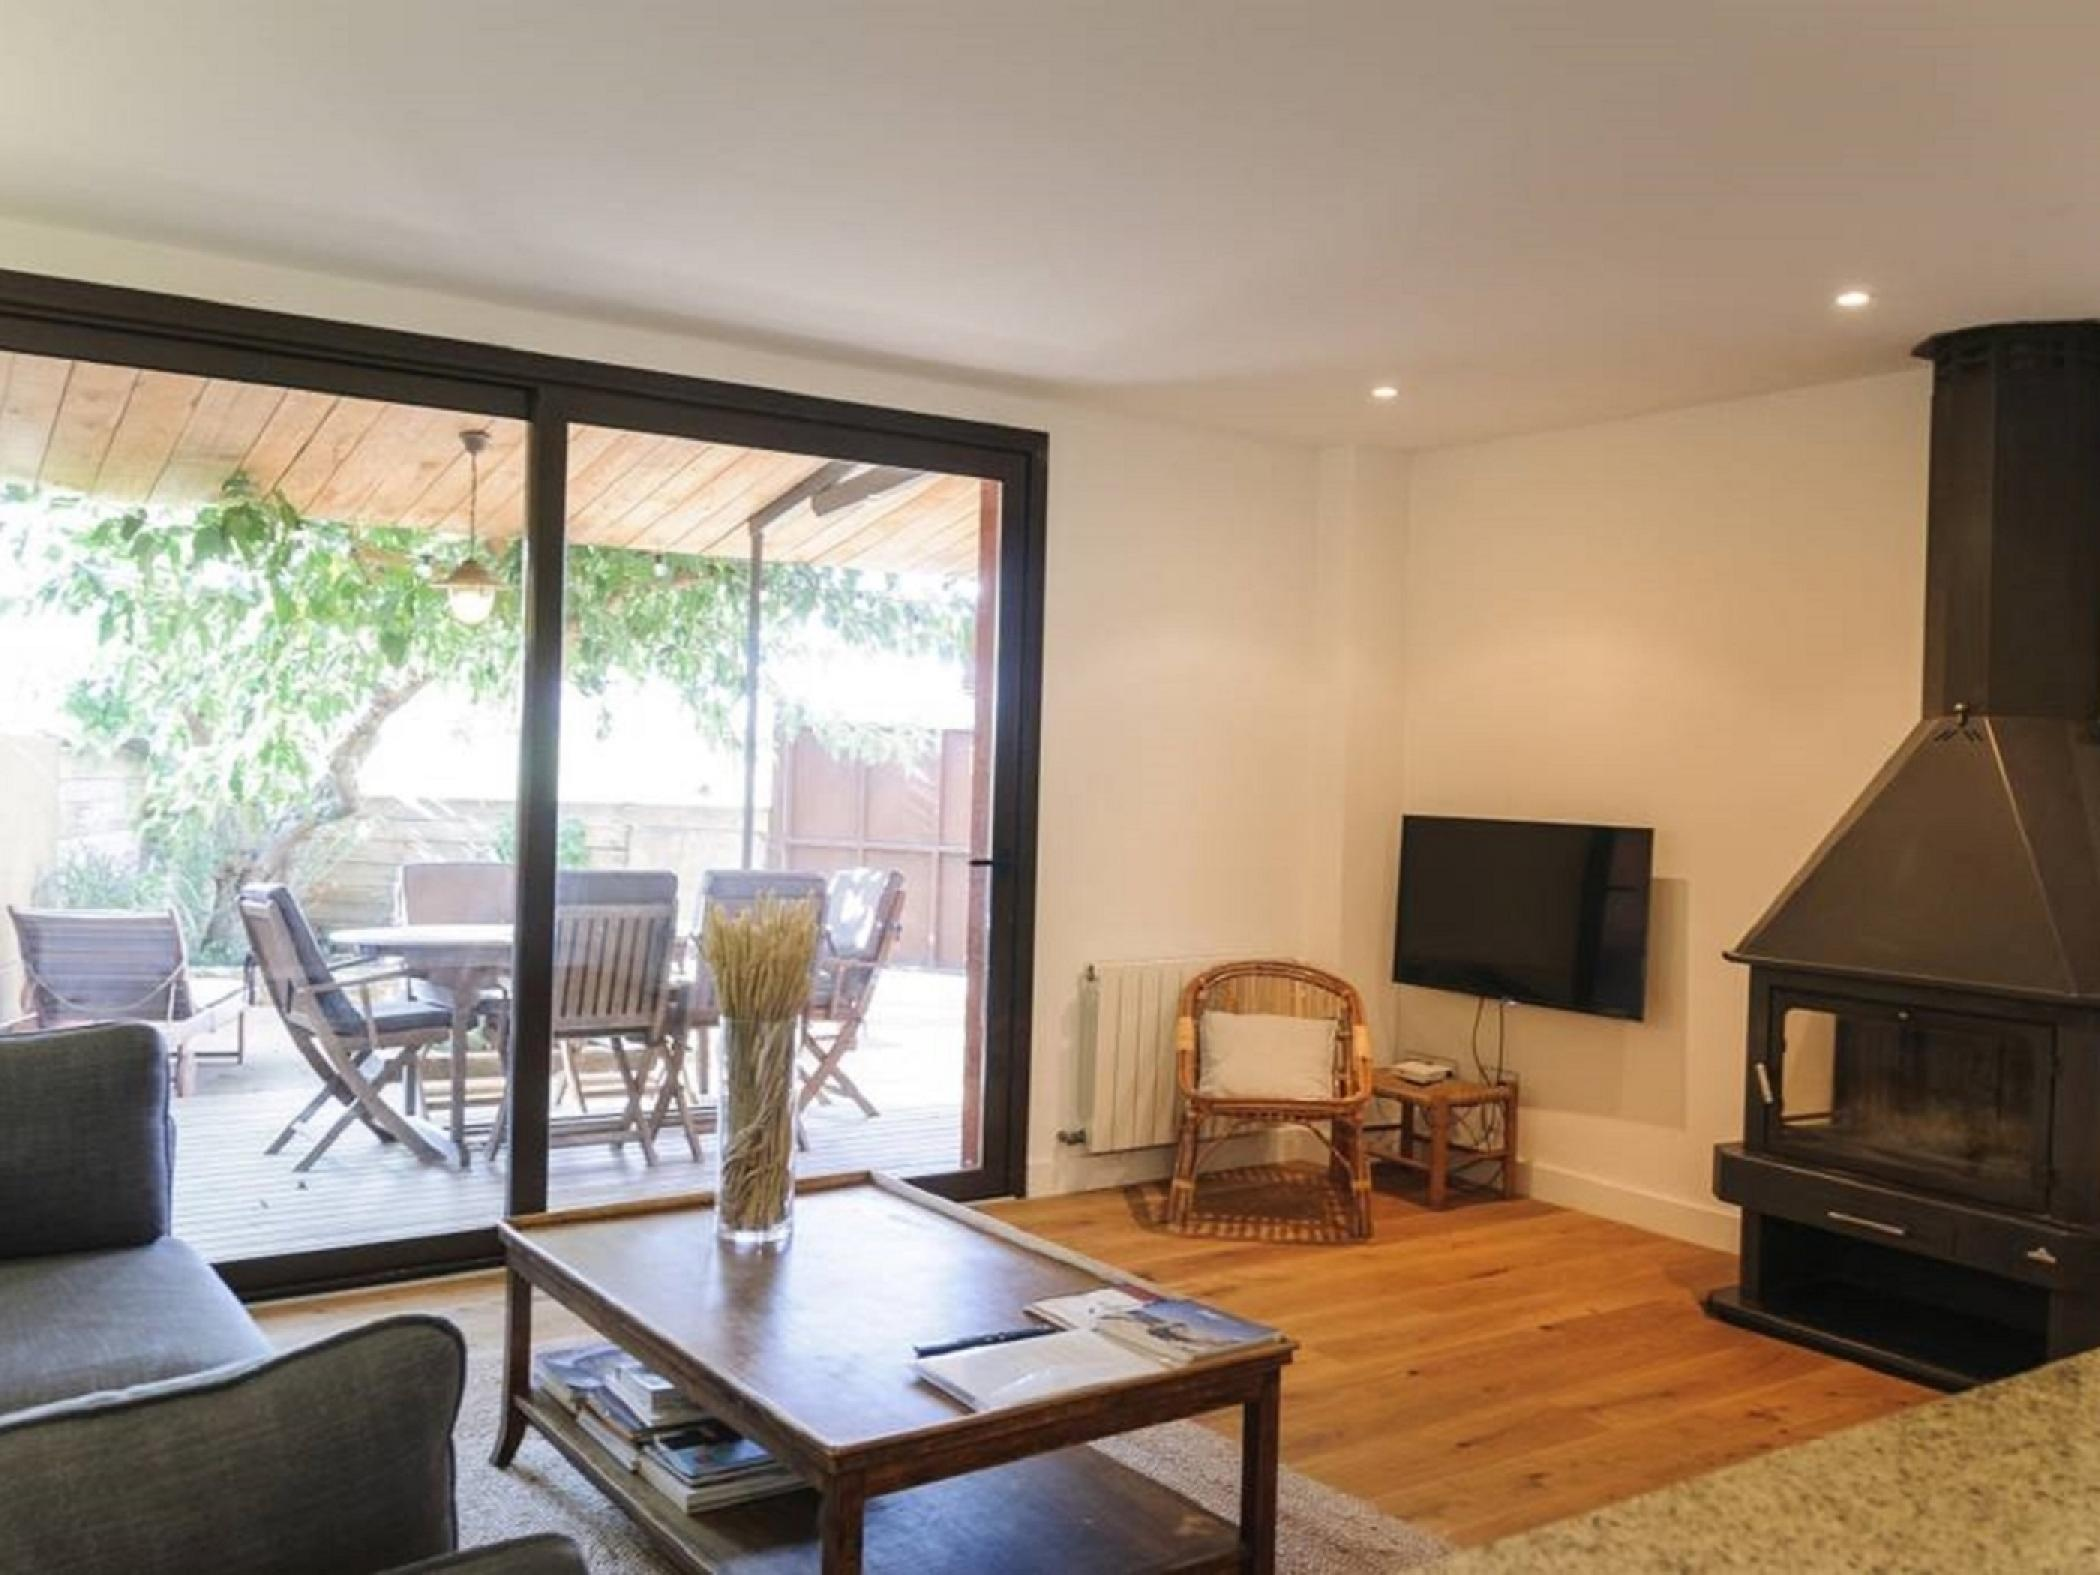 Living room with fireplace and terrace views - Apartment for rent in Sant Jordi Desvalls, Diana, Gir